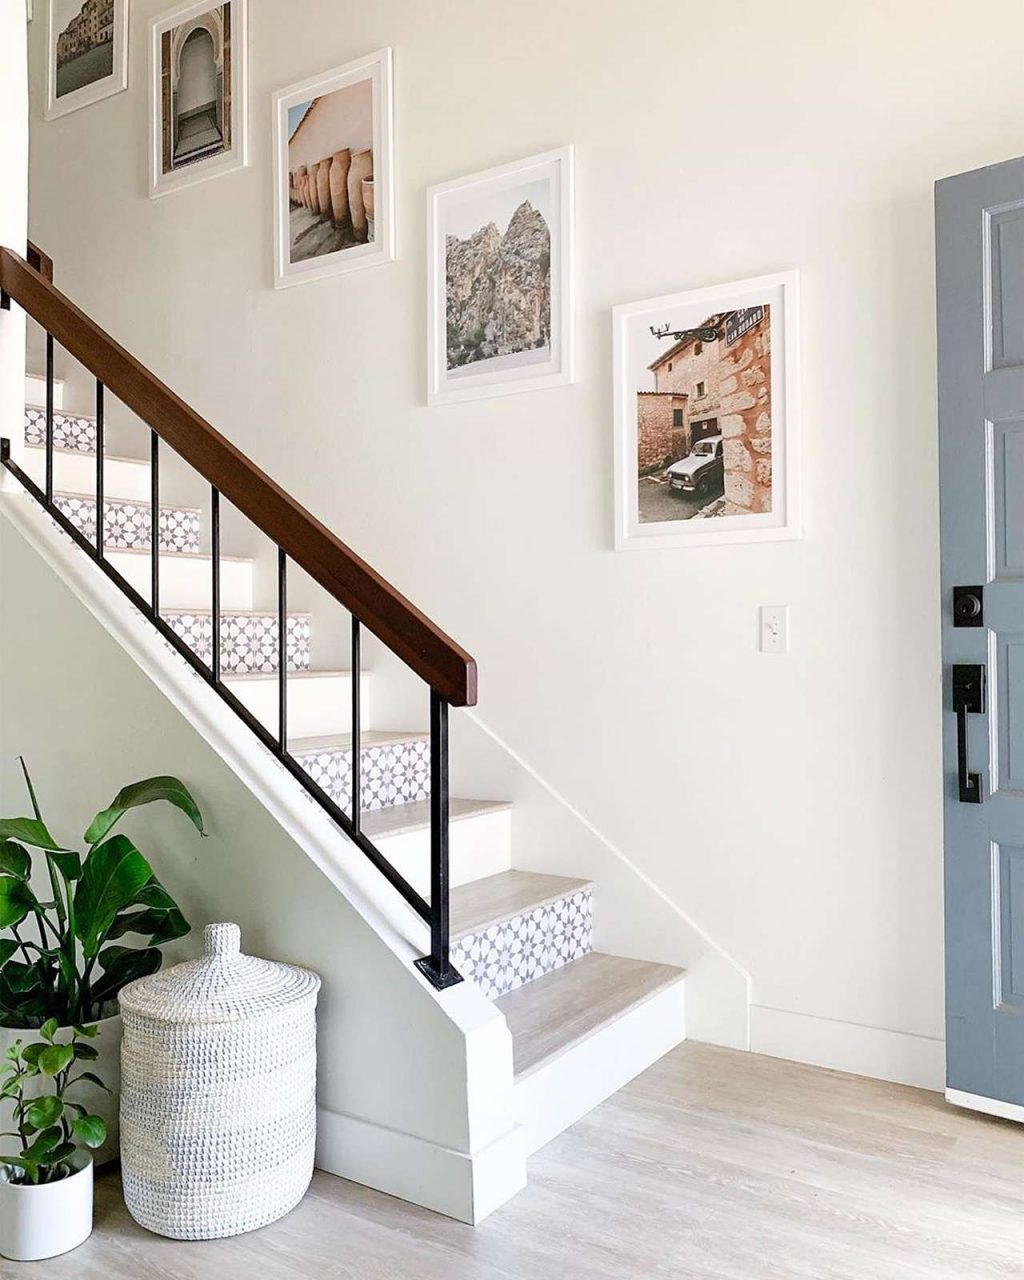 White picture frames on wall with staircase